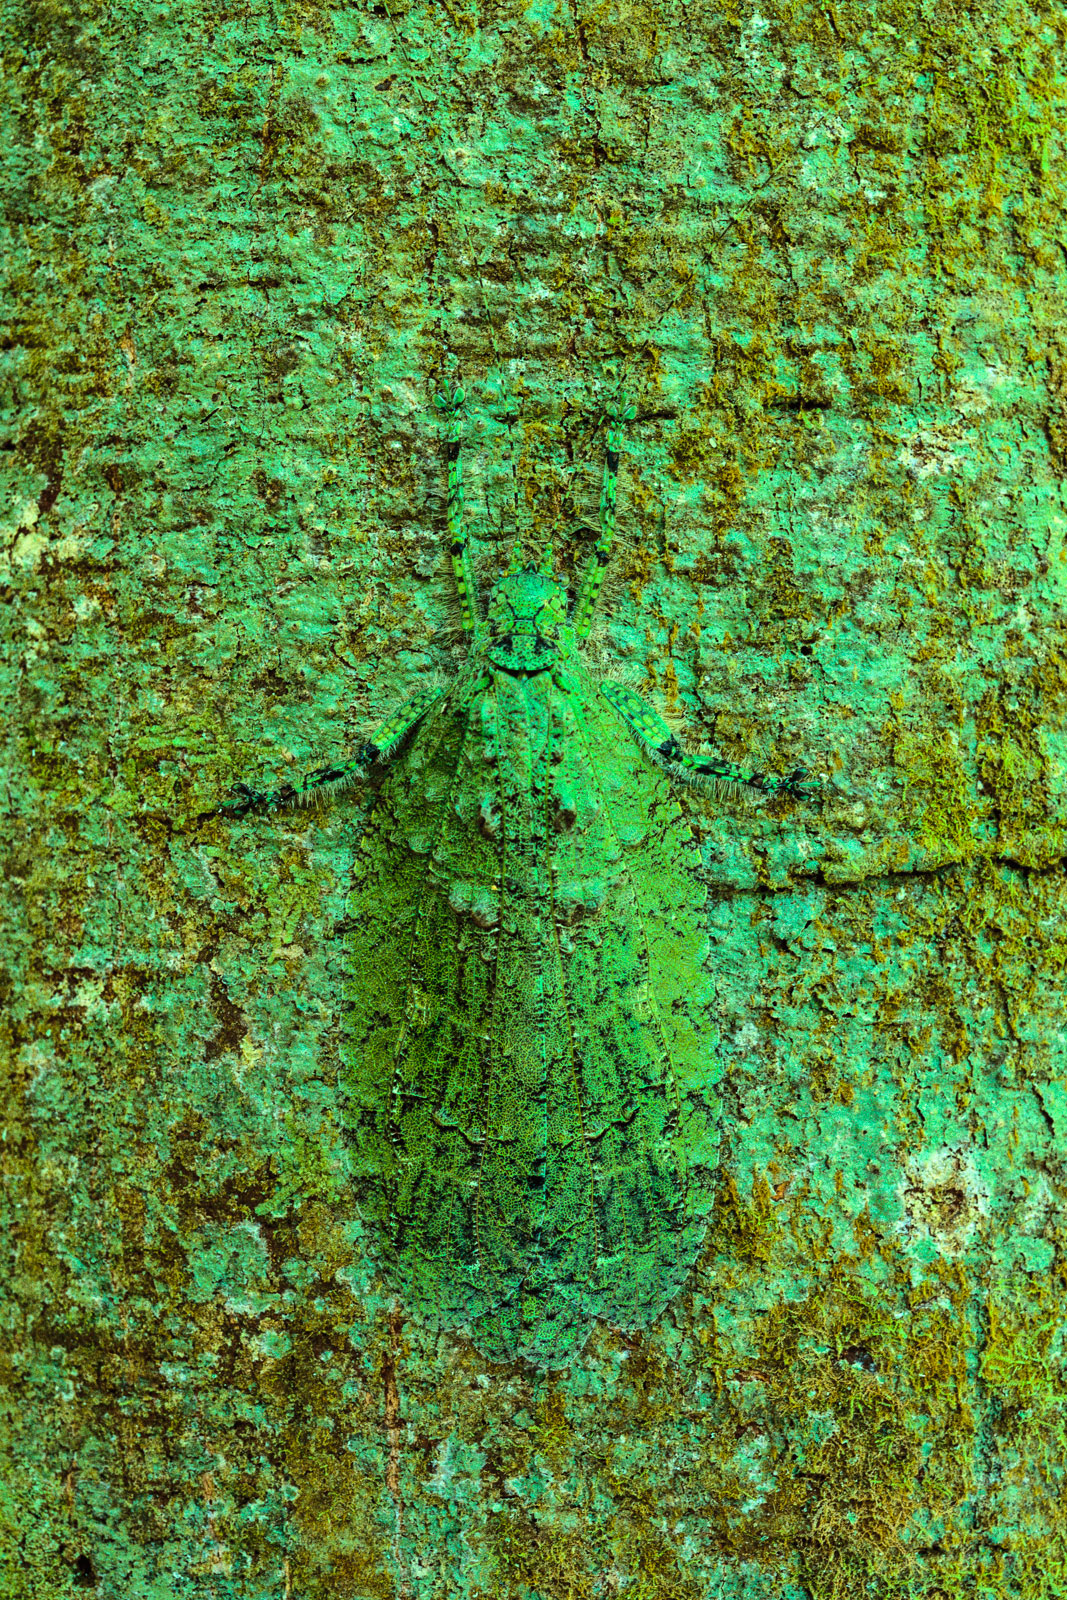 Lichen-mimic katydid camouflaged on tree, Sabah, Borneo